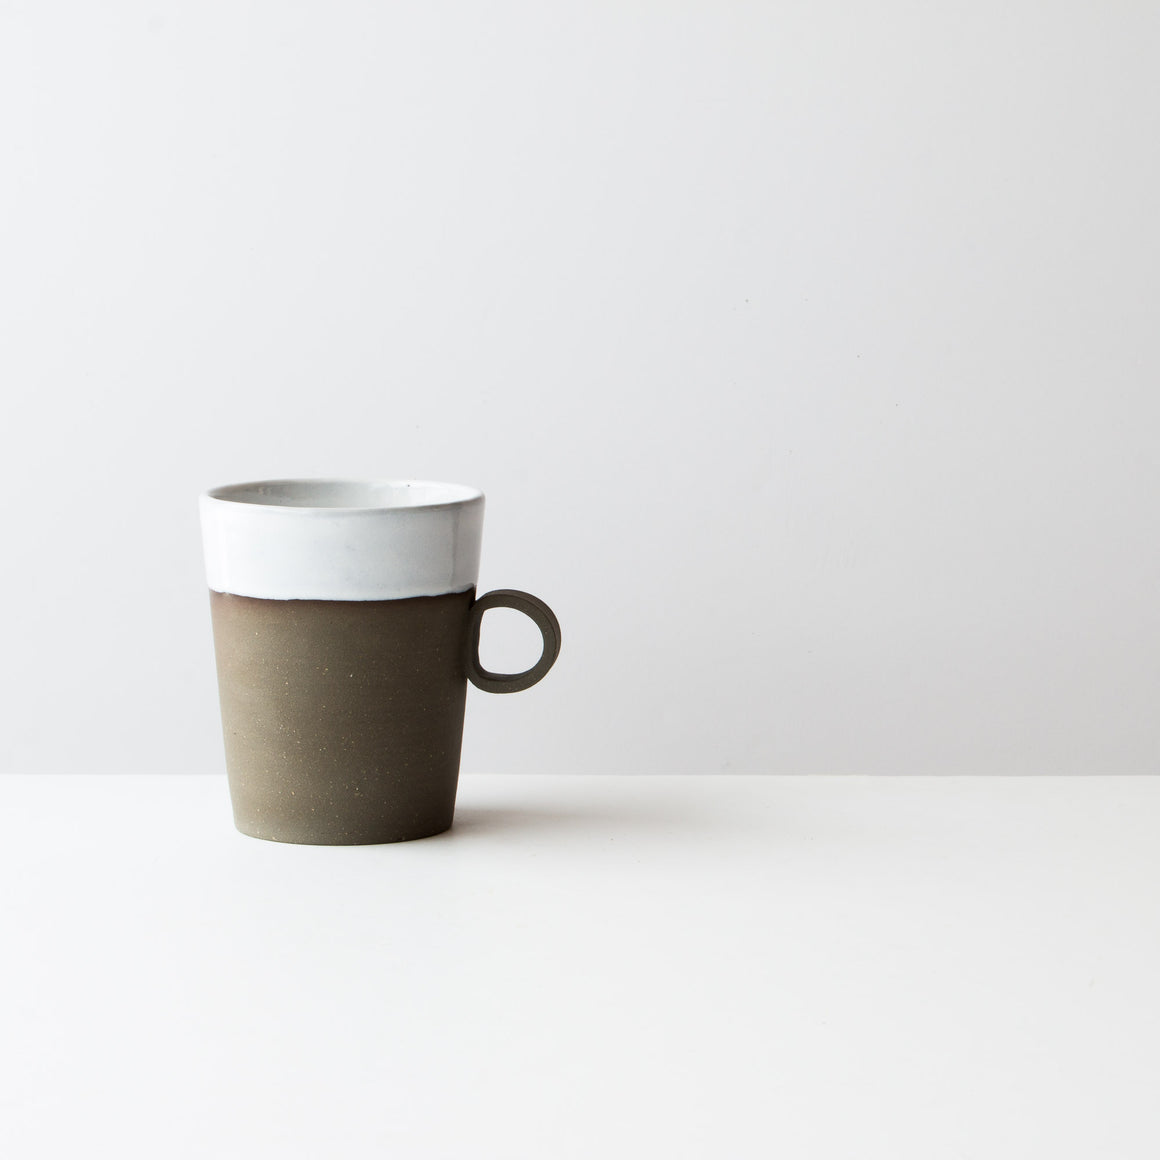 Handmade Very Large Mug - Sold by Chic & Basta